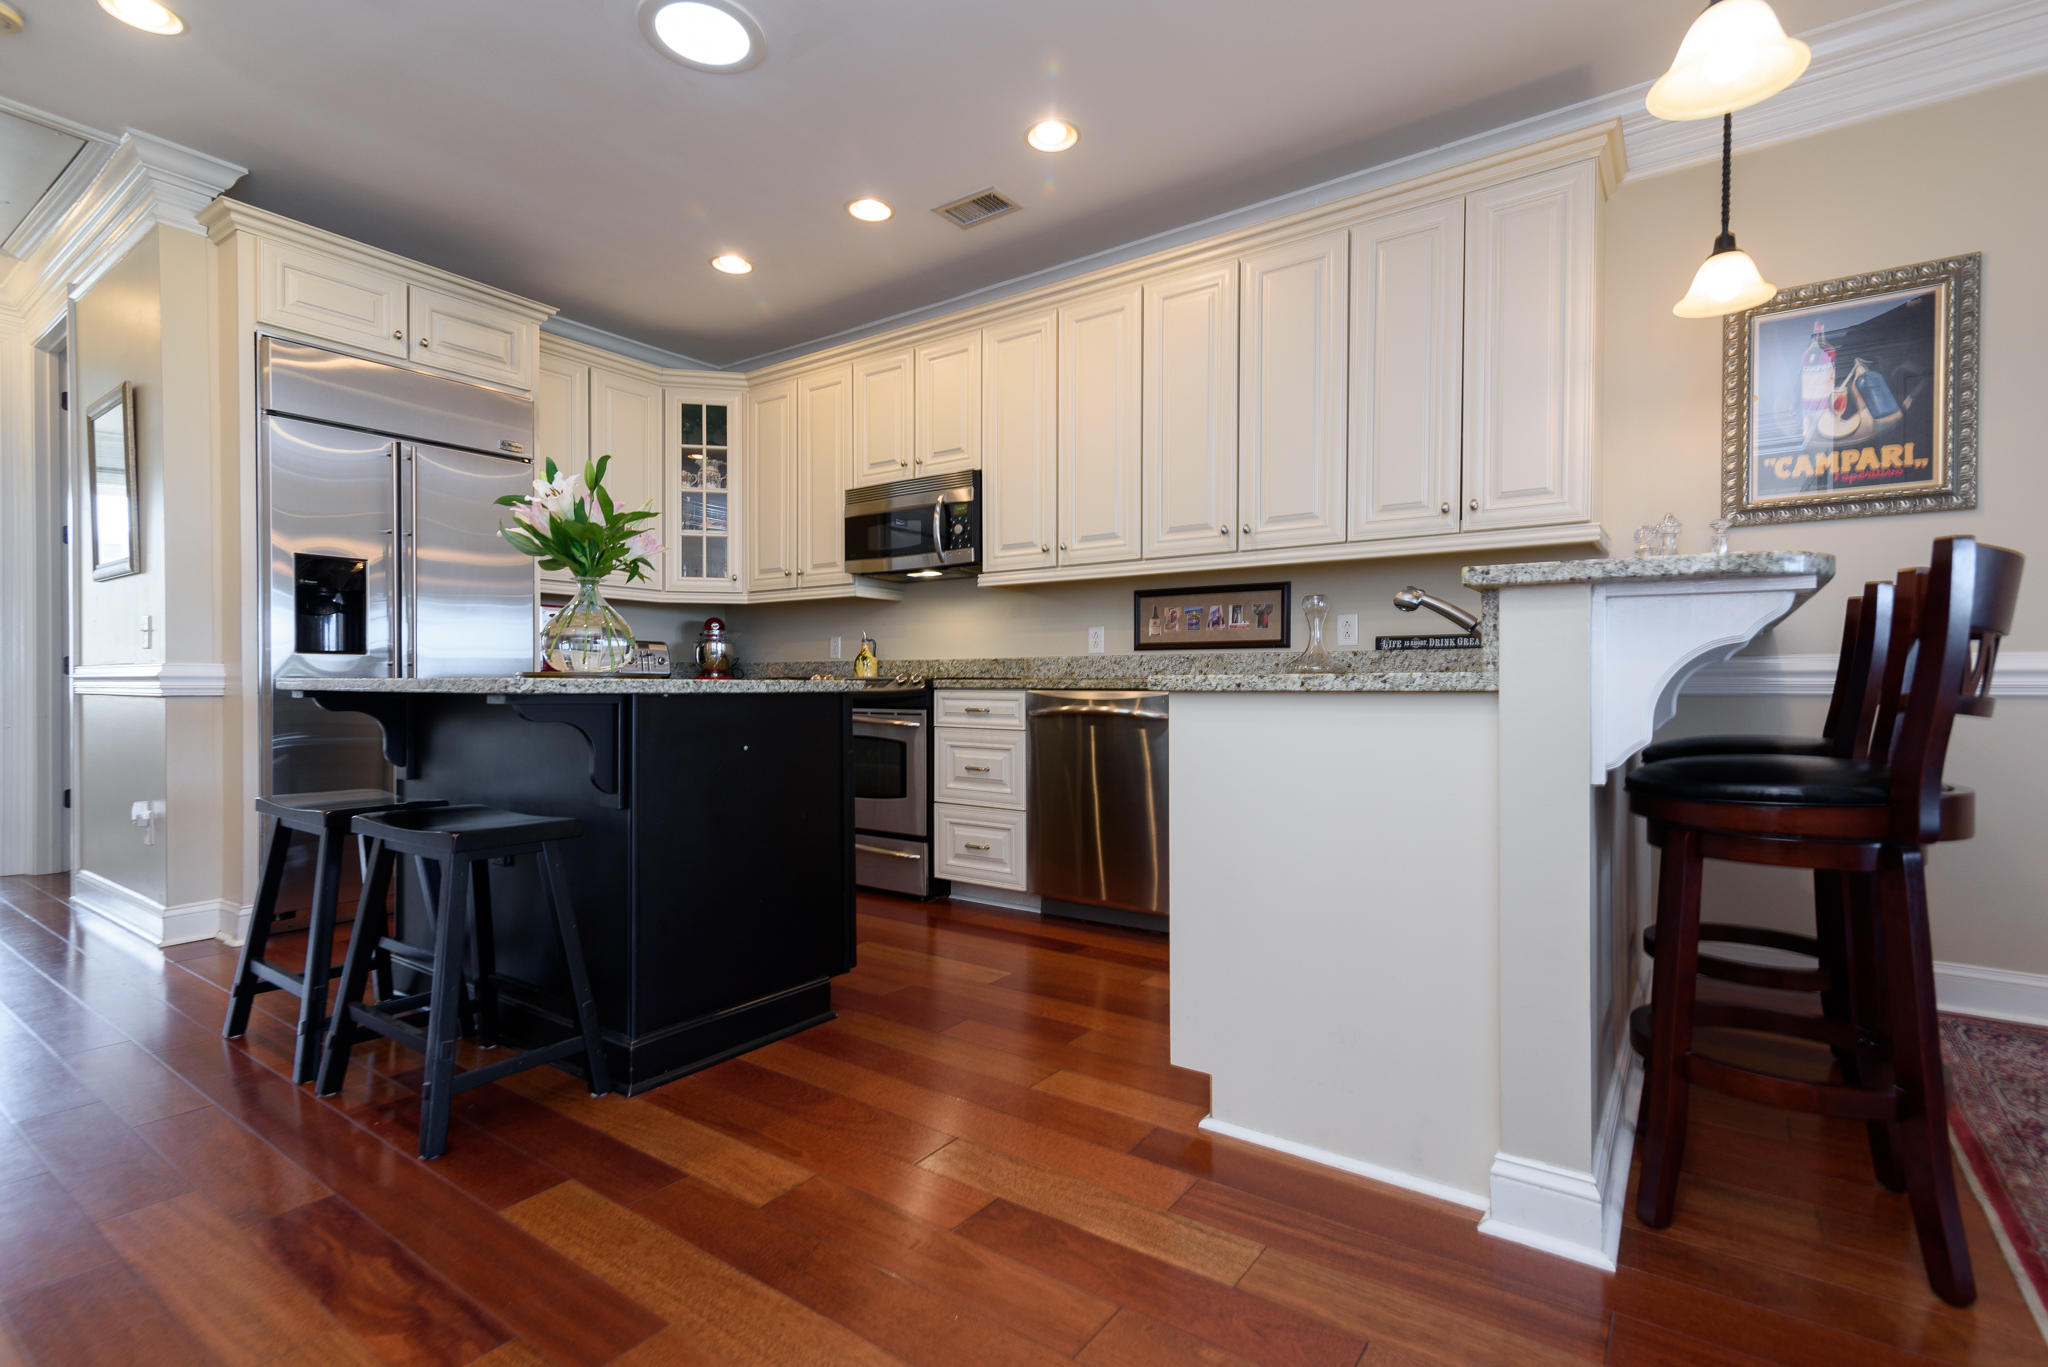 Sawyer's Landing Homes For Sale - 977 Cove Bay, Mount Pleasant, SC - 8